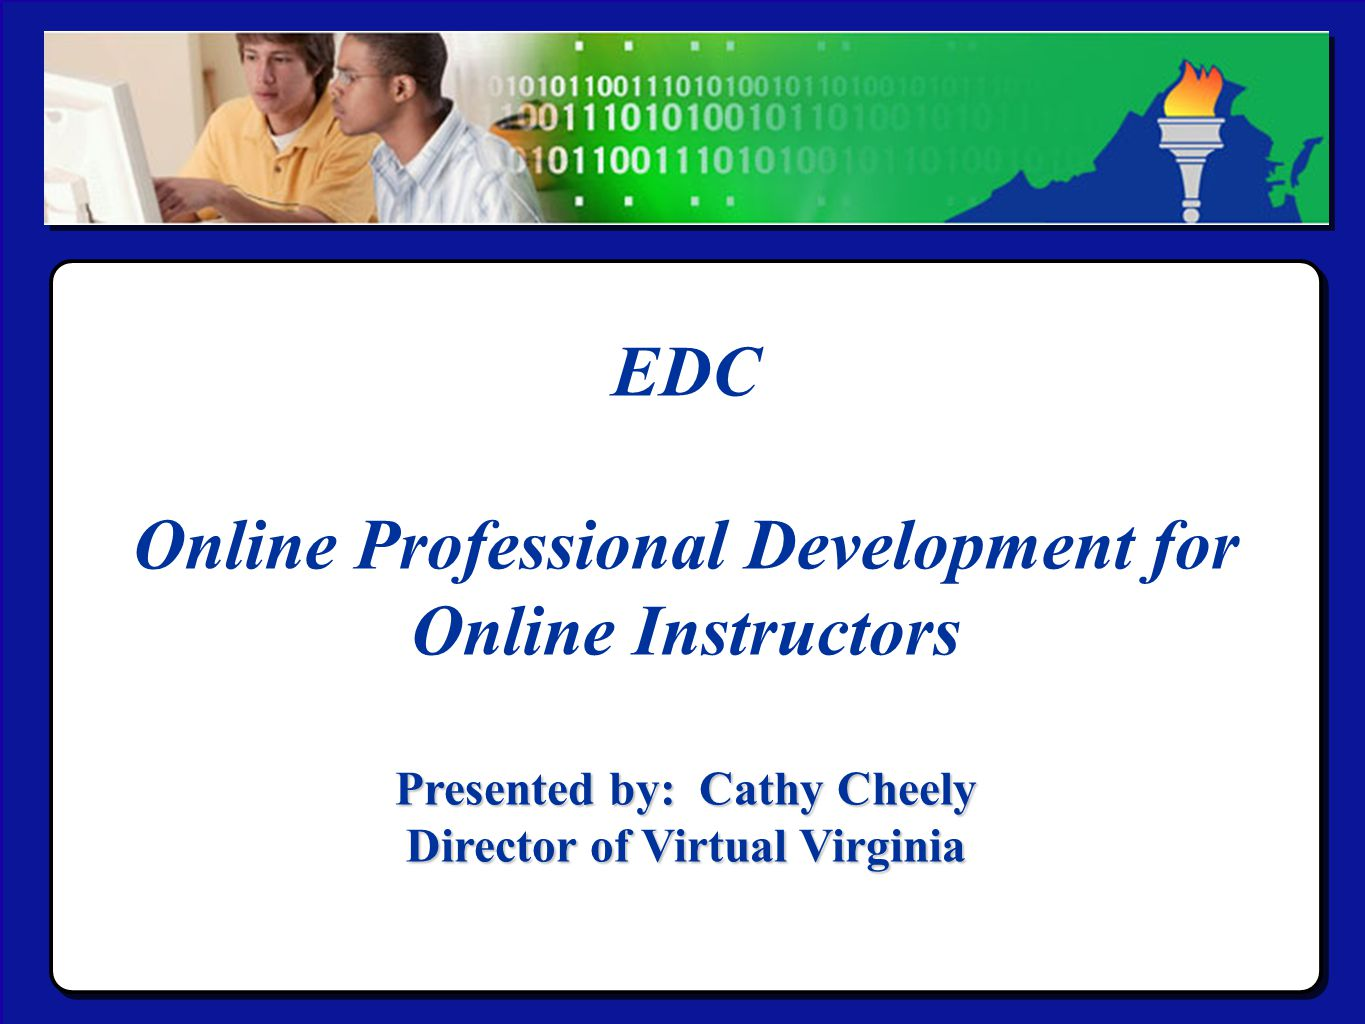 Virtual Virginia EDC Online Professional Development for Online Instructors Presented by: Cathy Cheely Director of Virtual Virginia EDC Online Professional Development for Online Instructors Presented by: Cathy Cheely Director of Virtual Virginia